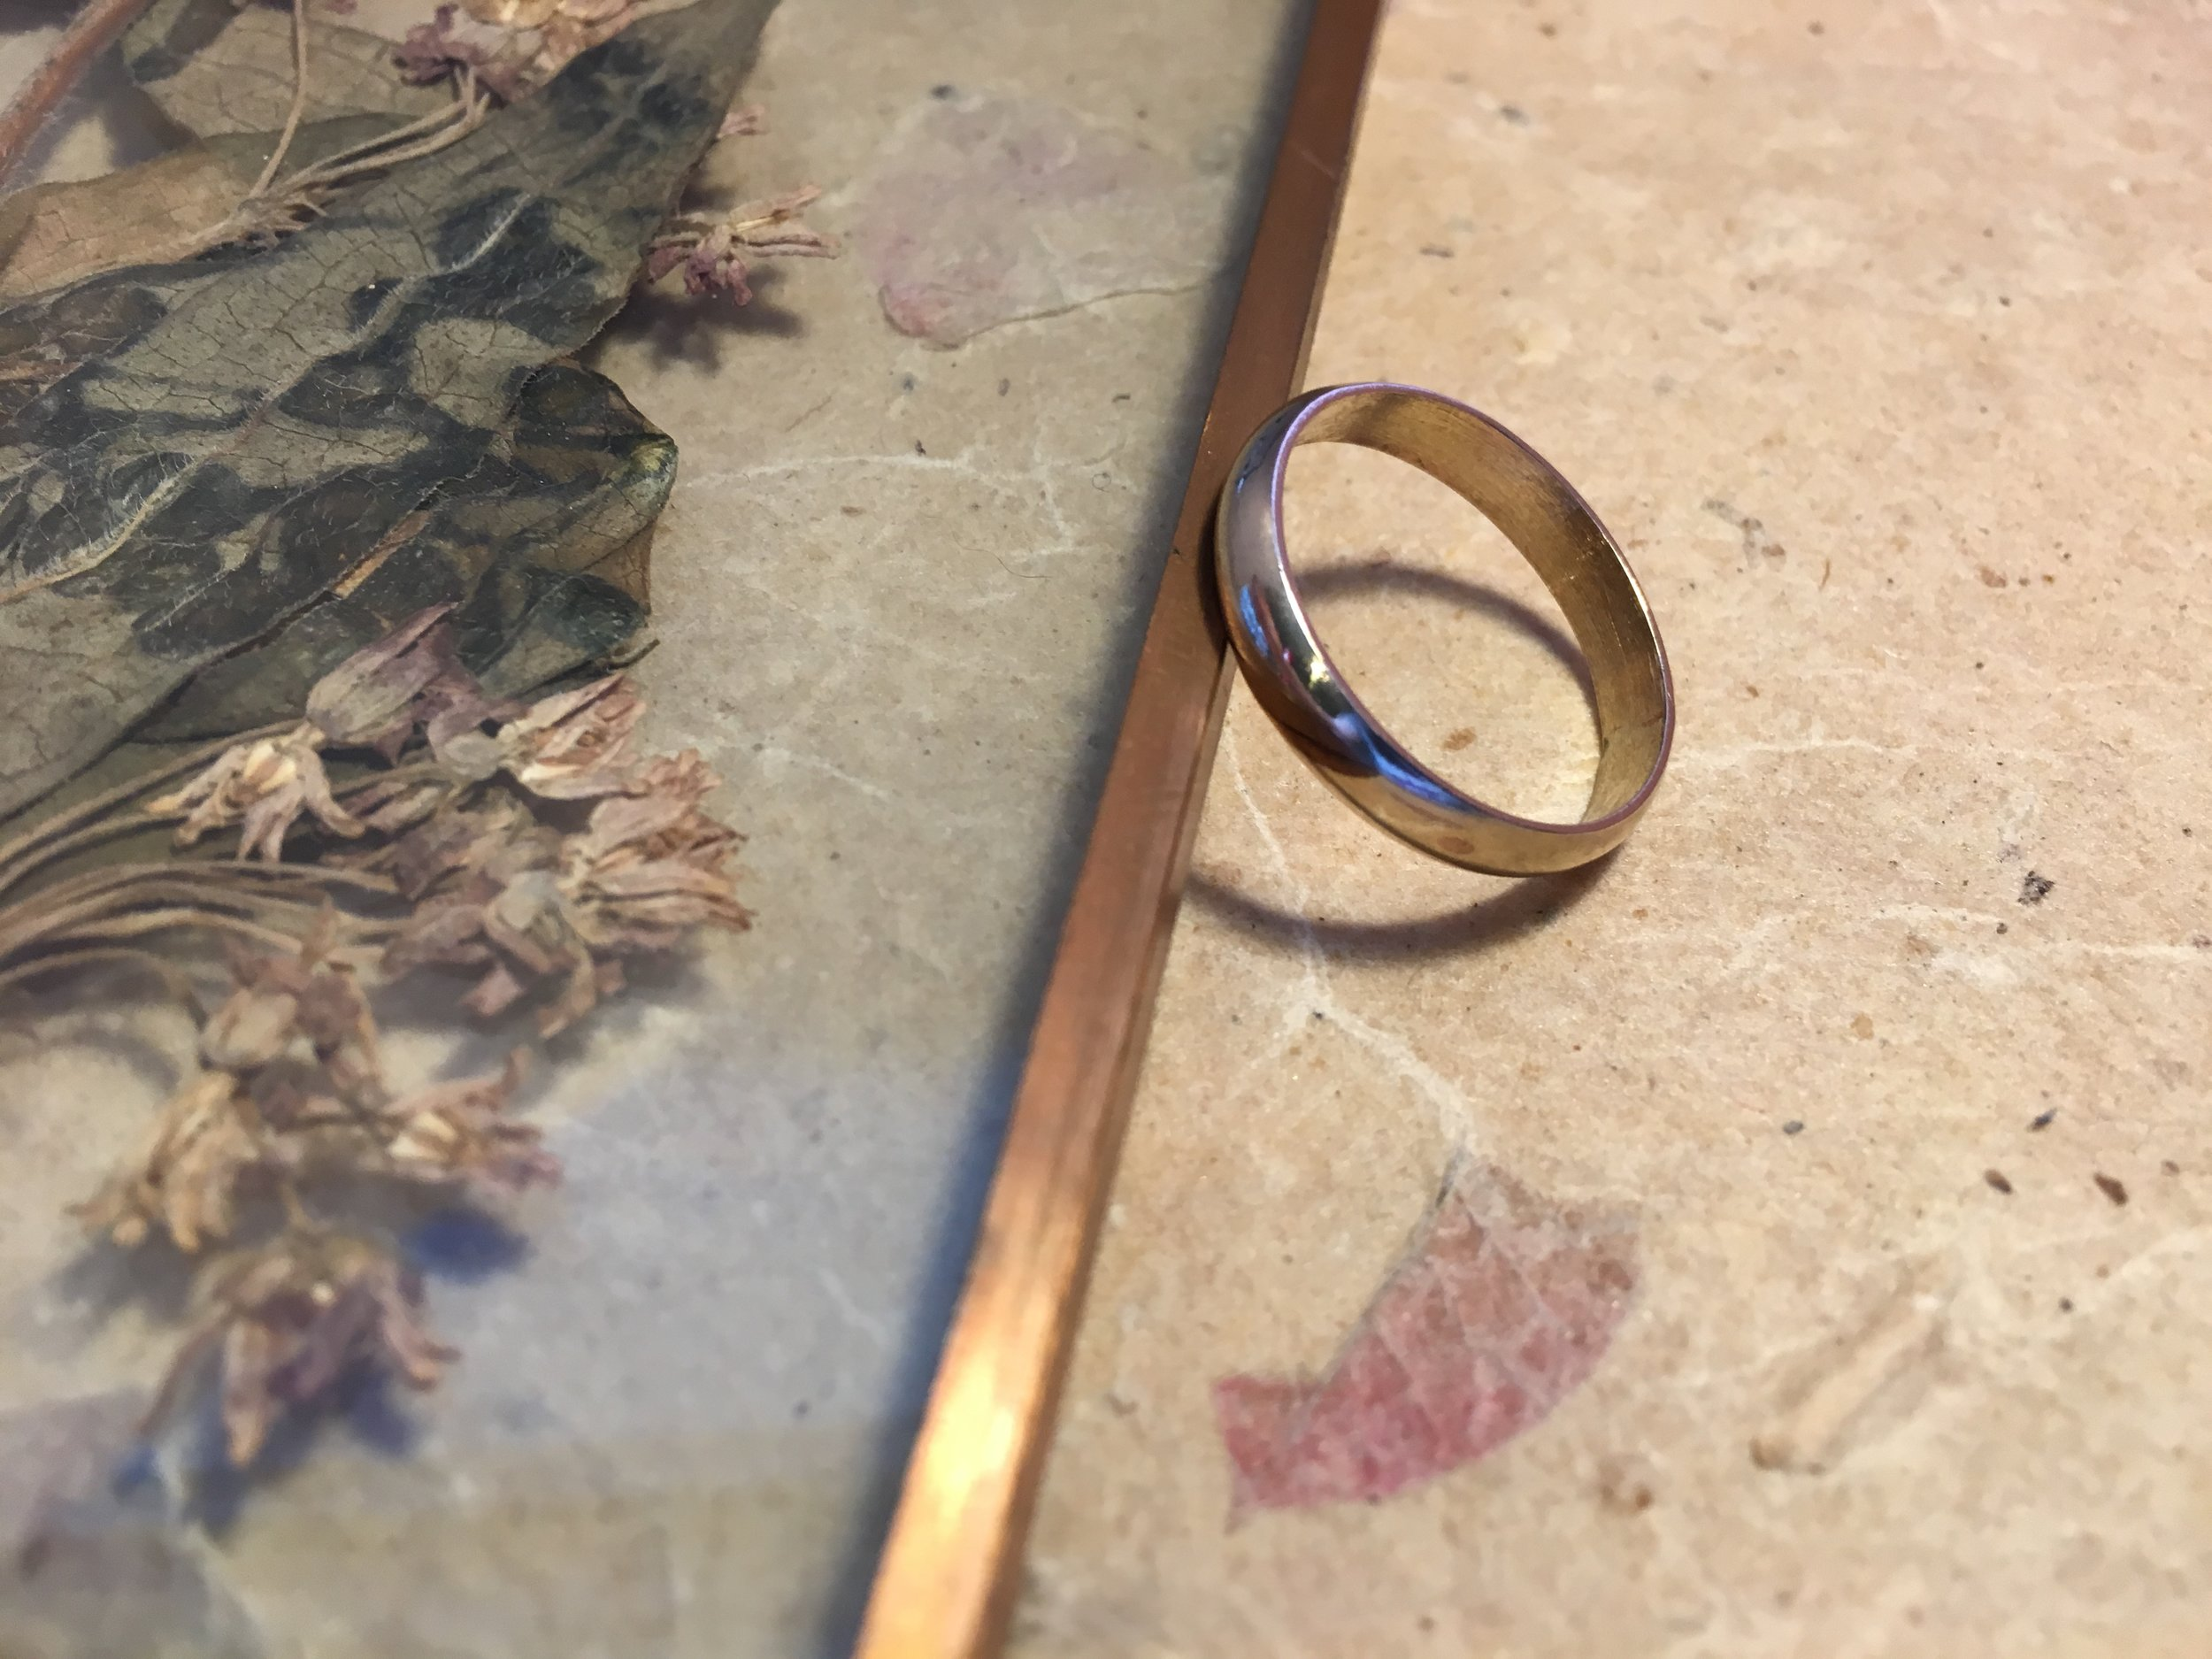 D Shaped Ring with a Plain Polished or Brushed Texture  Available in varying widths and thicknesses in white gold, yellow gold, rose gold, sterling silver, ethical recycled silver, and ethical recycled gold.  £50 - £350 *